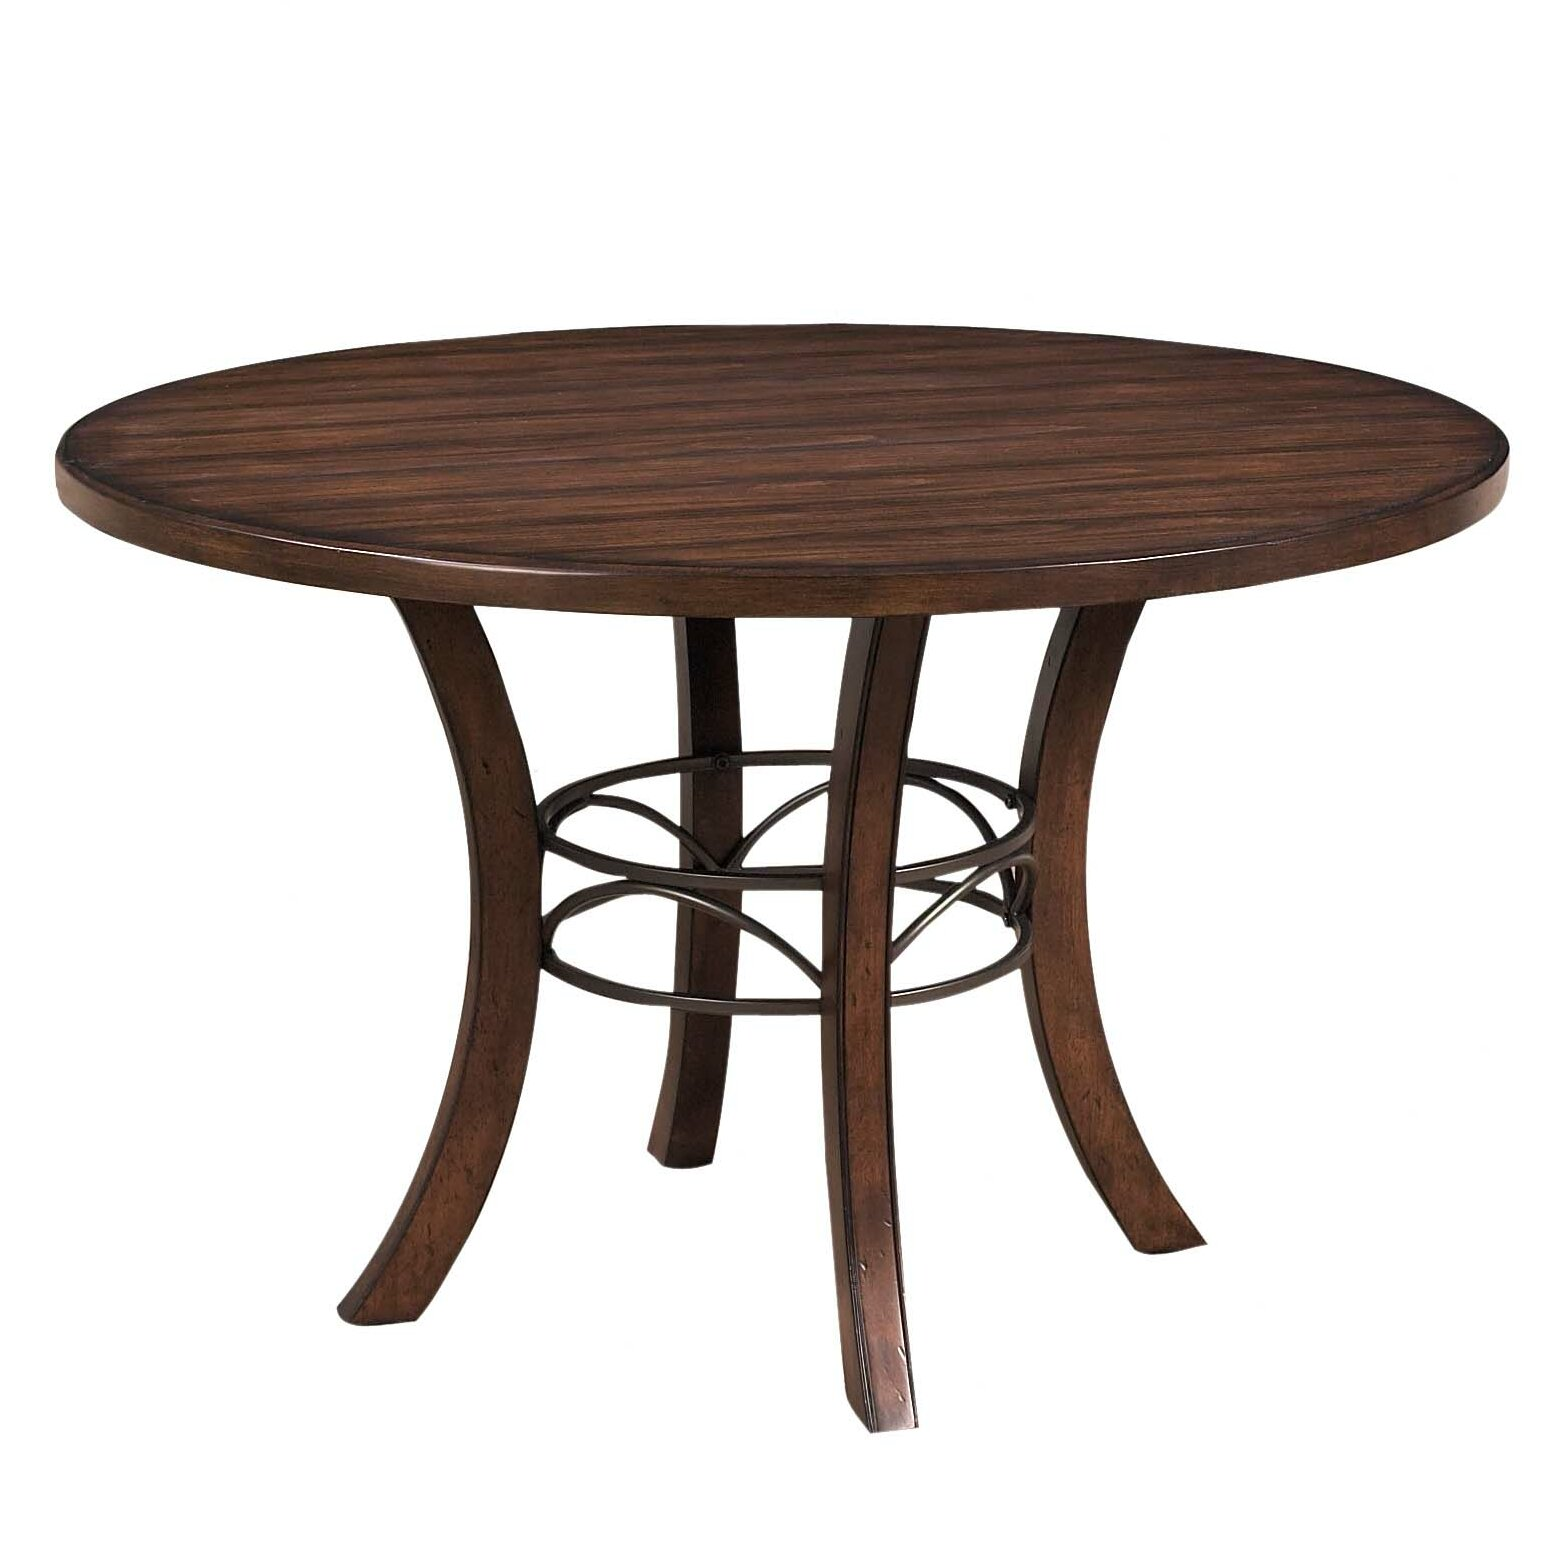 Red Round Dining Table: Red Barrel Studio Royalton Round Dining Table & Reviews